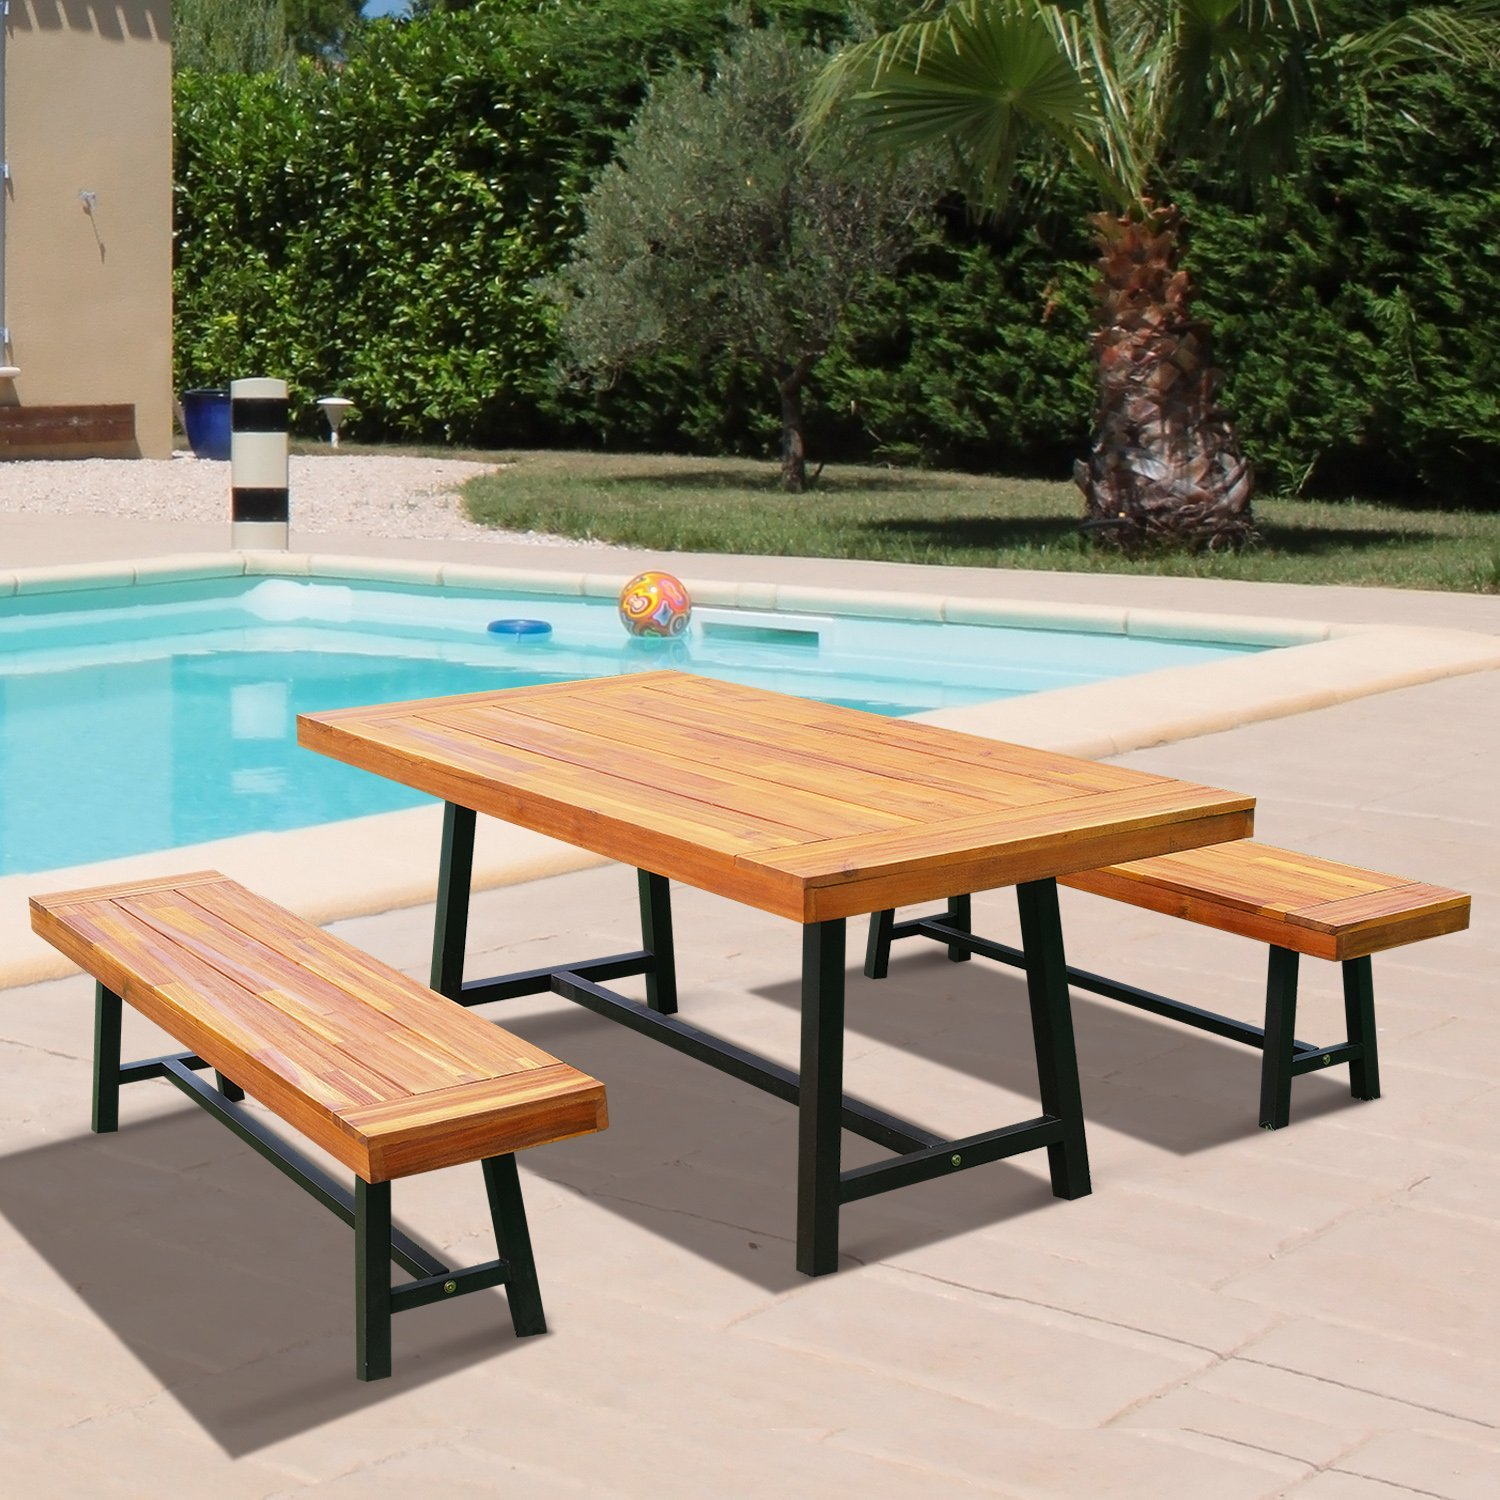 71 Rustic Acacia Wood Outdoor Picnic Table and 63� Bench Seat Set Natural Red Wood by